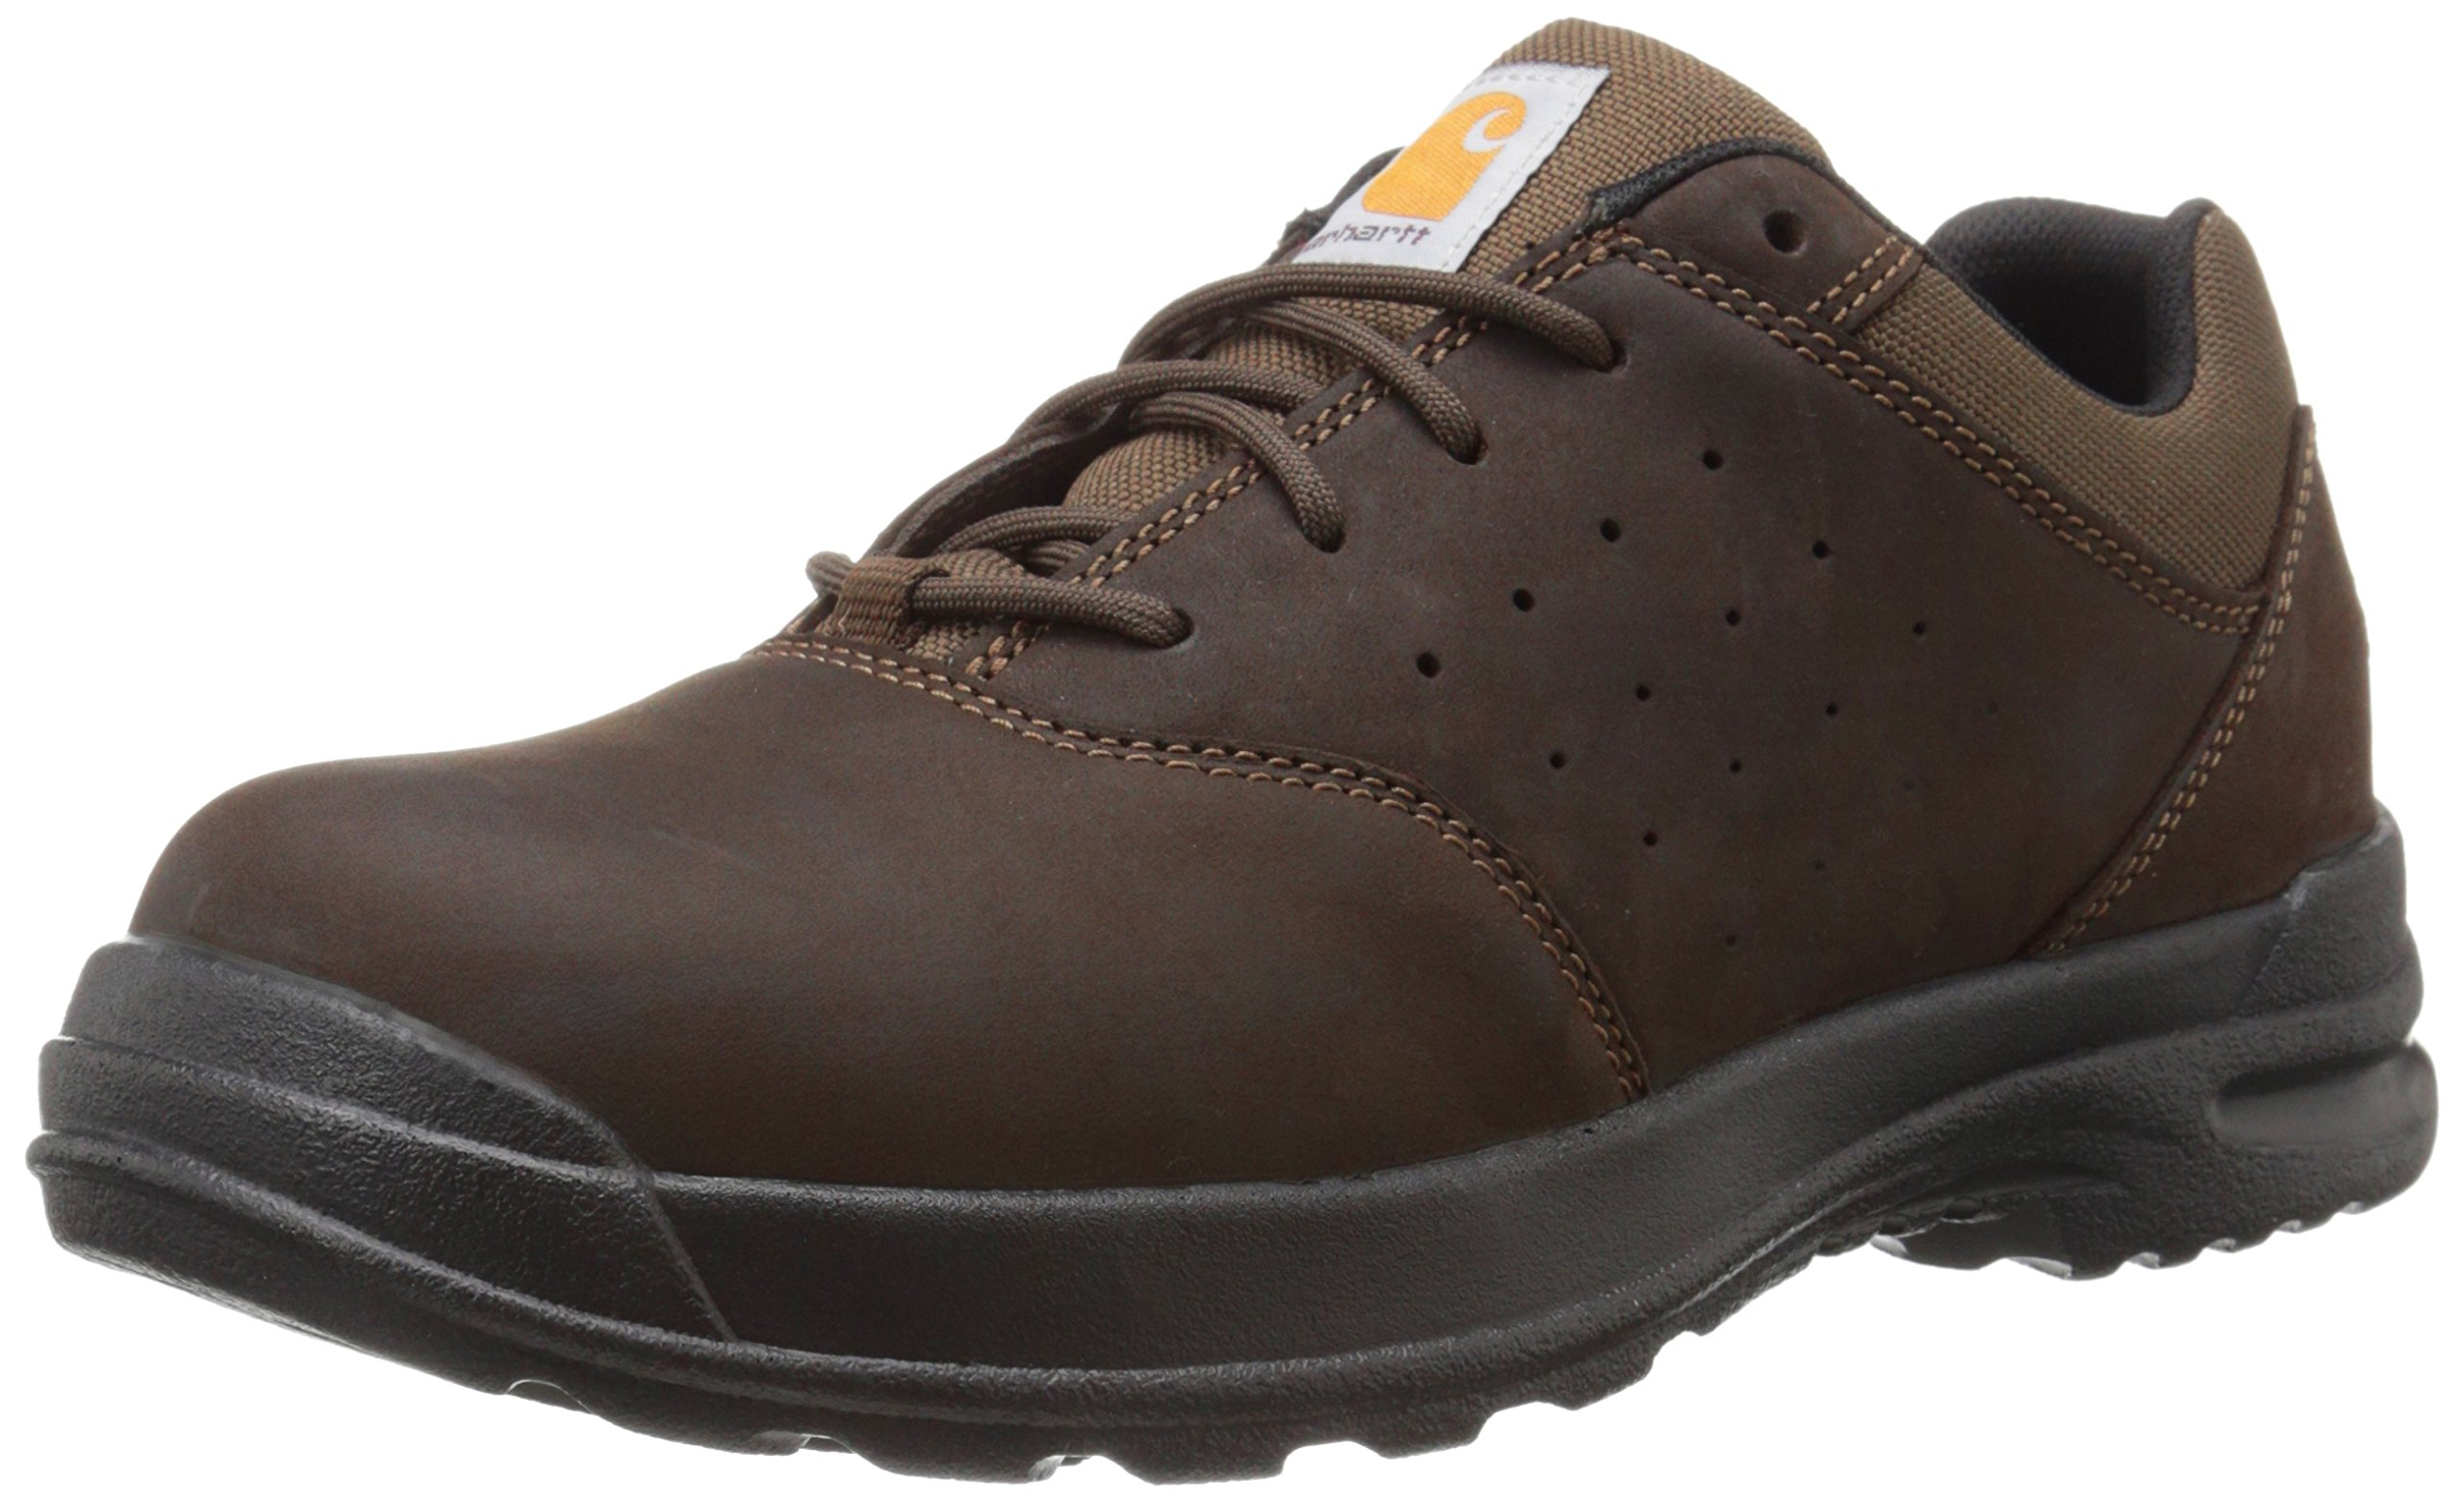 Carhartt Men's CMO3040 Walking Oxford,Dark Brown, 13 M US by Carhartt (Image #1)